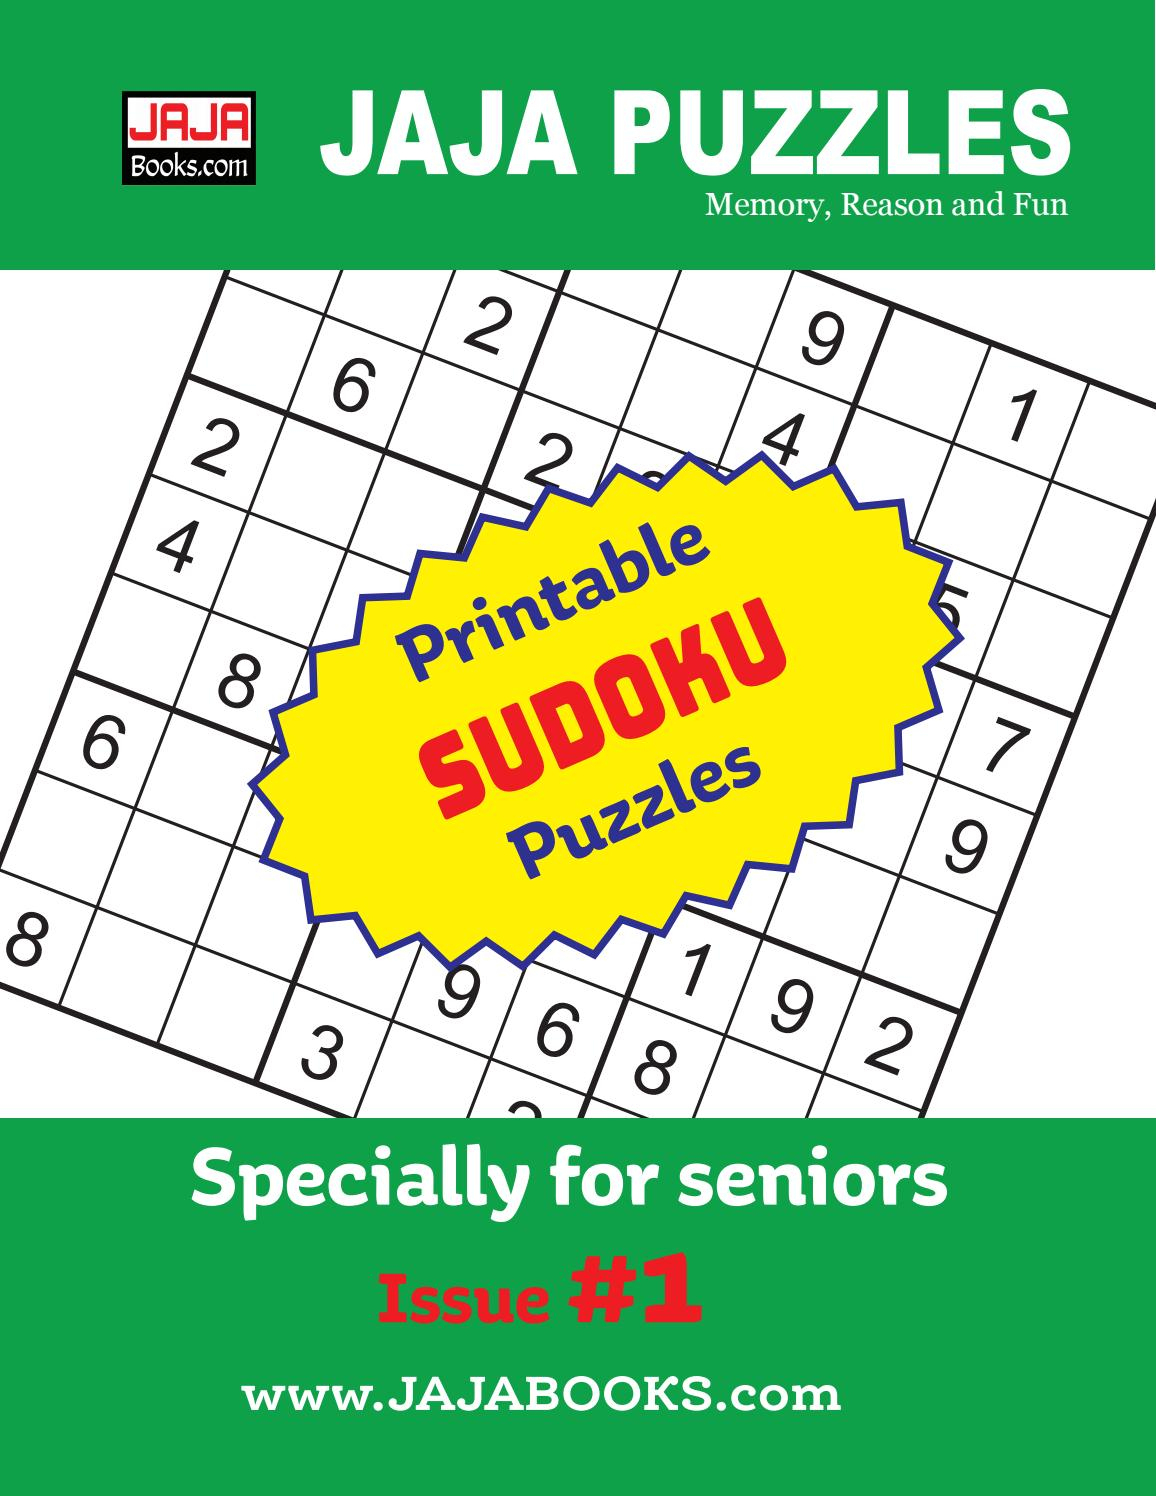 Printable Sudoku Puzzles. Issue #1Jaja Books - Issuu